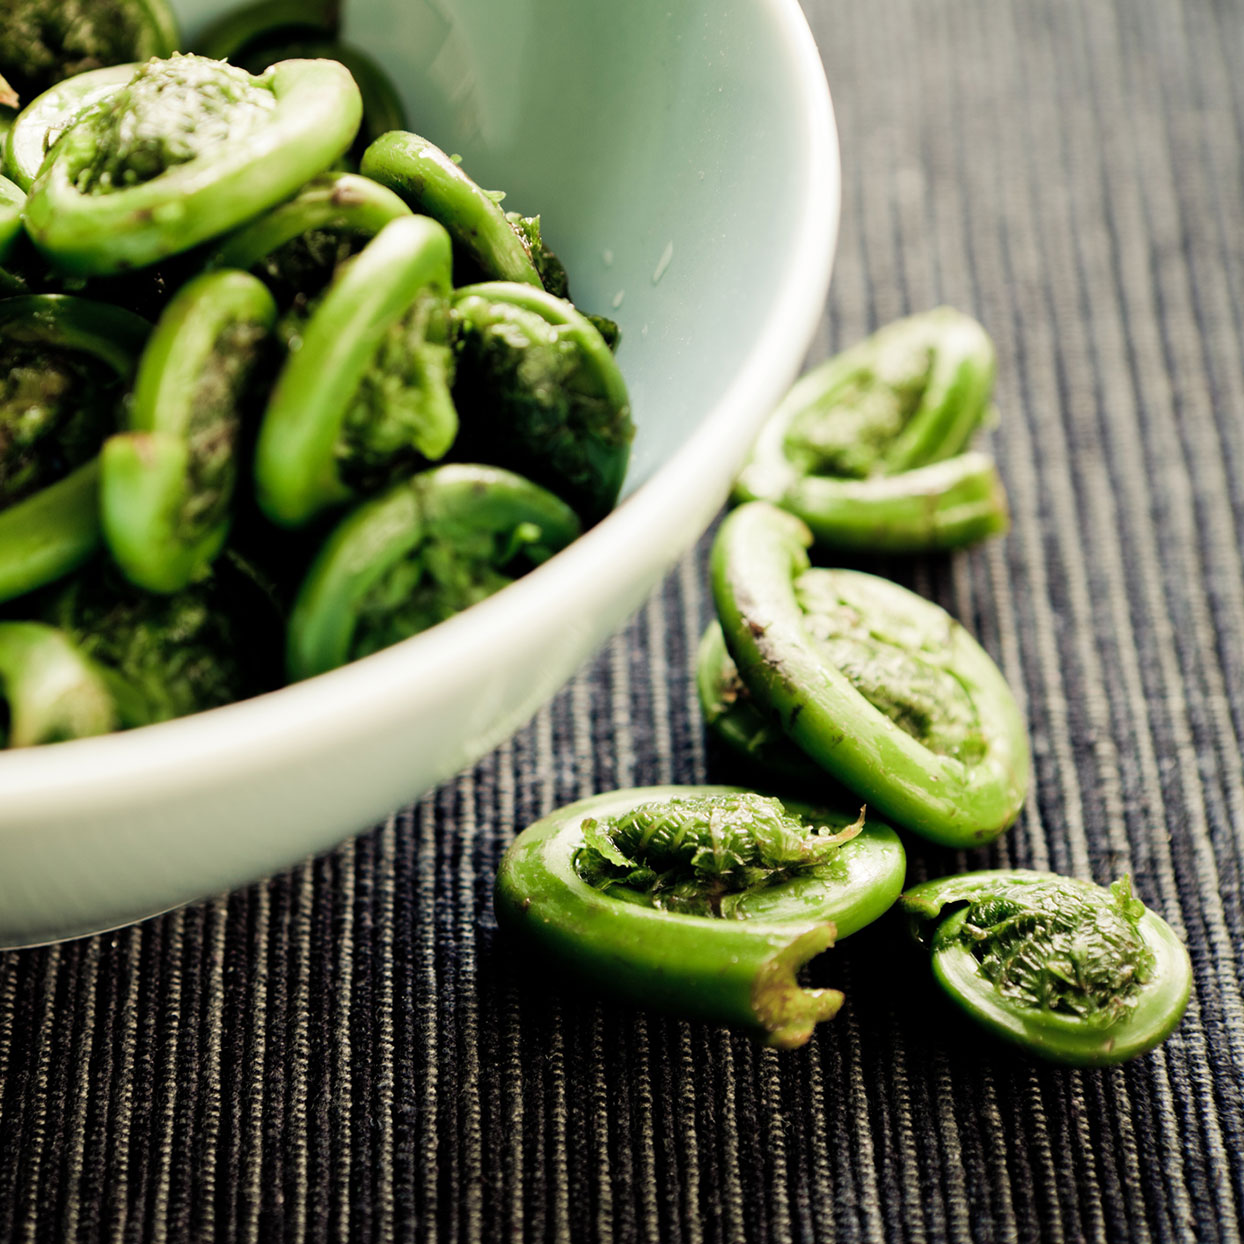 What Are Fiddlehead Ferns and How Do I Use Them in Cooking?